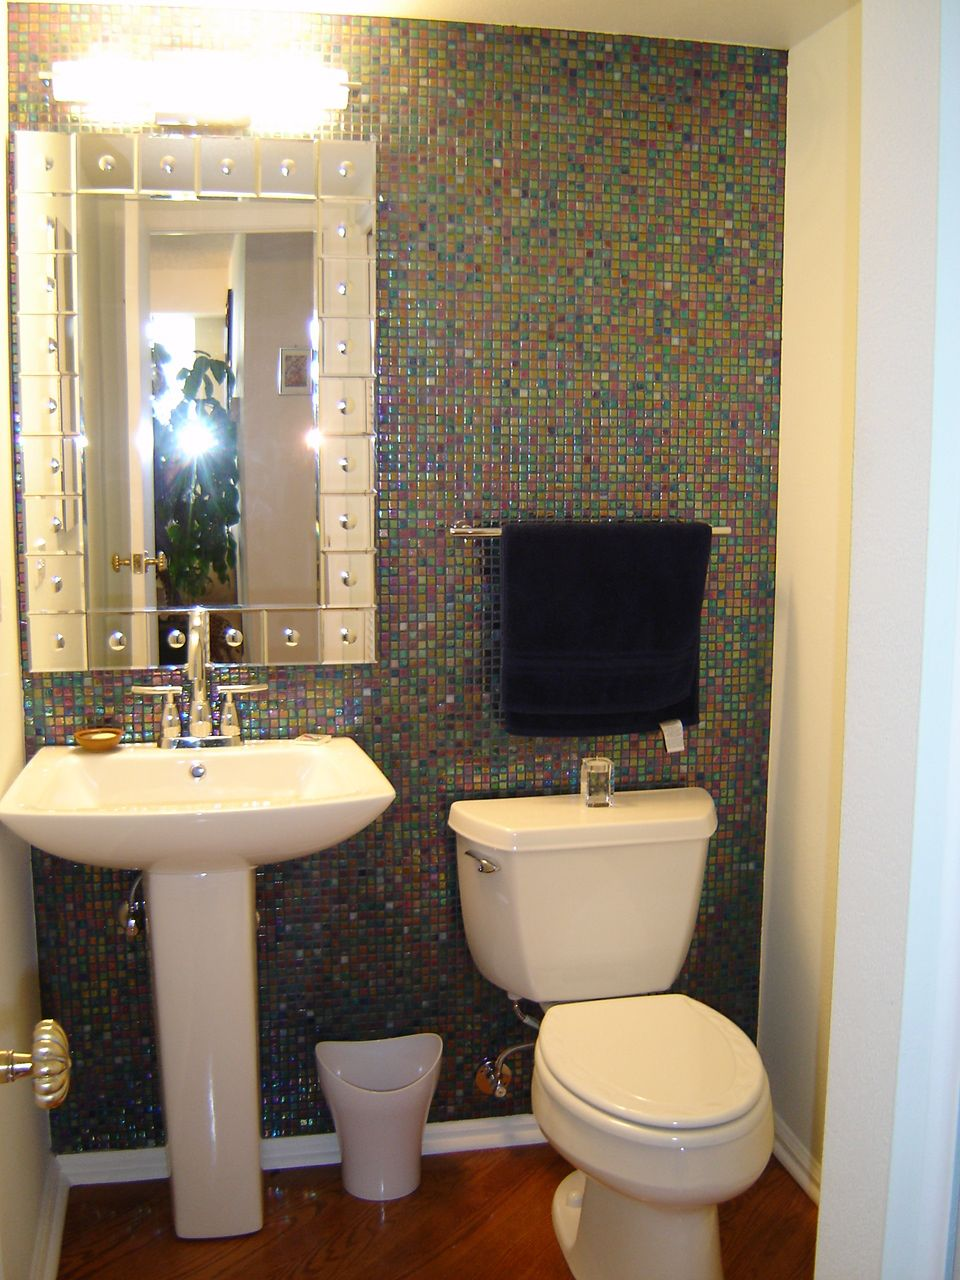 Bathroom powder room ideas - Sparkling Powder Room Design With Cool Mosaic Wall Tiles White Stand Sink And Chrome Towel Rail Ideas Awesome Powder Room Design